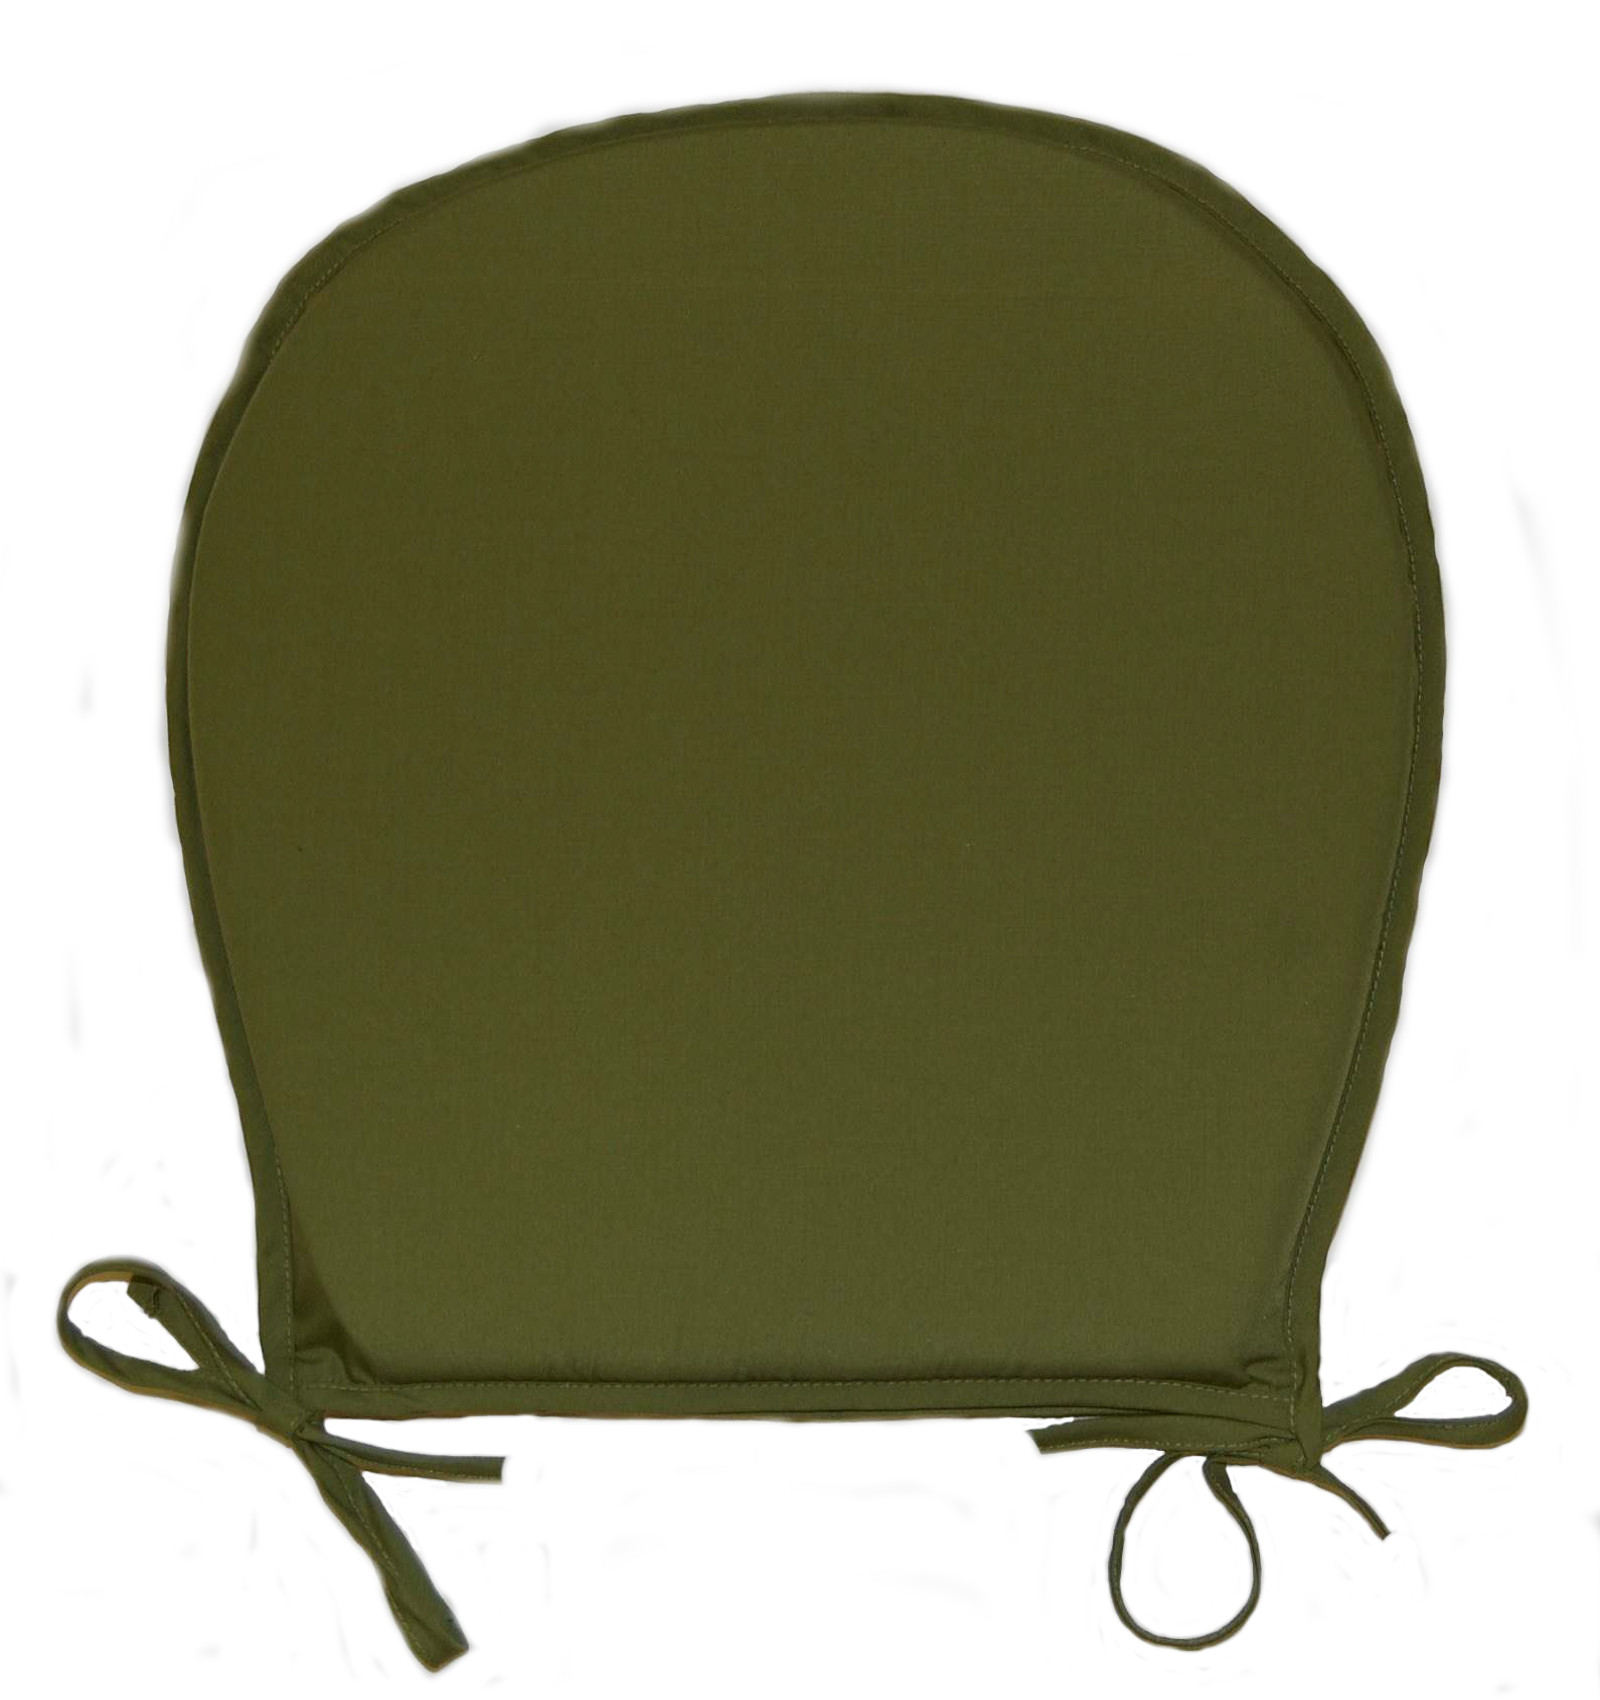 dining room chair cushion shell round kitchen seat pad garden furniture